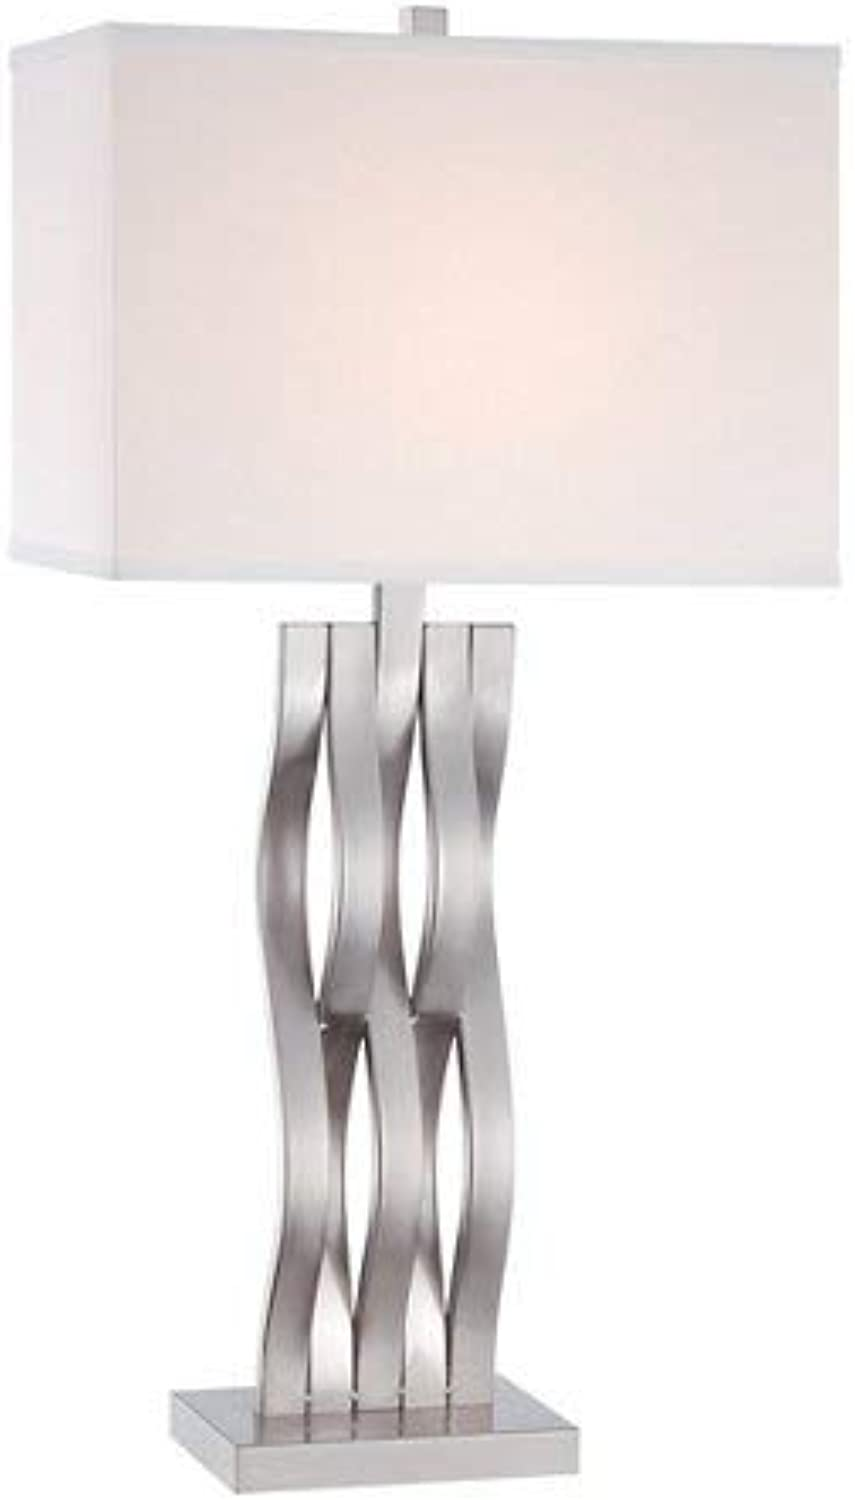 Lite Source LS-22075 Table Lamp with White Fabric Shades, Chrome Finish